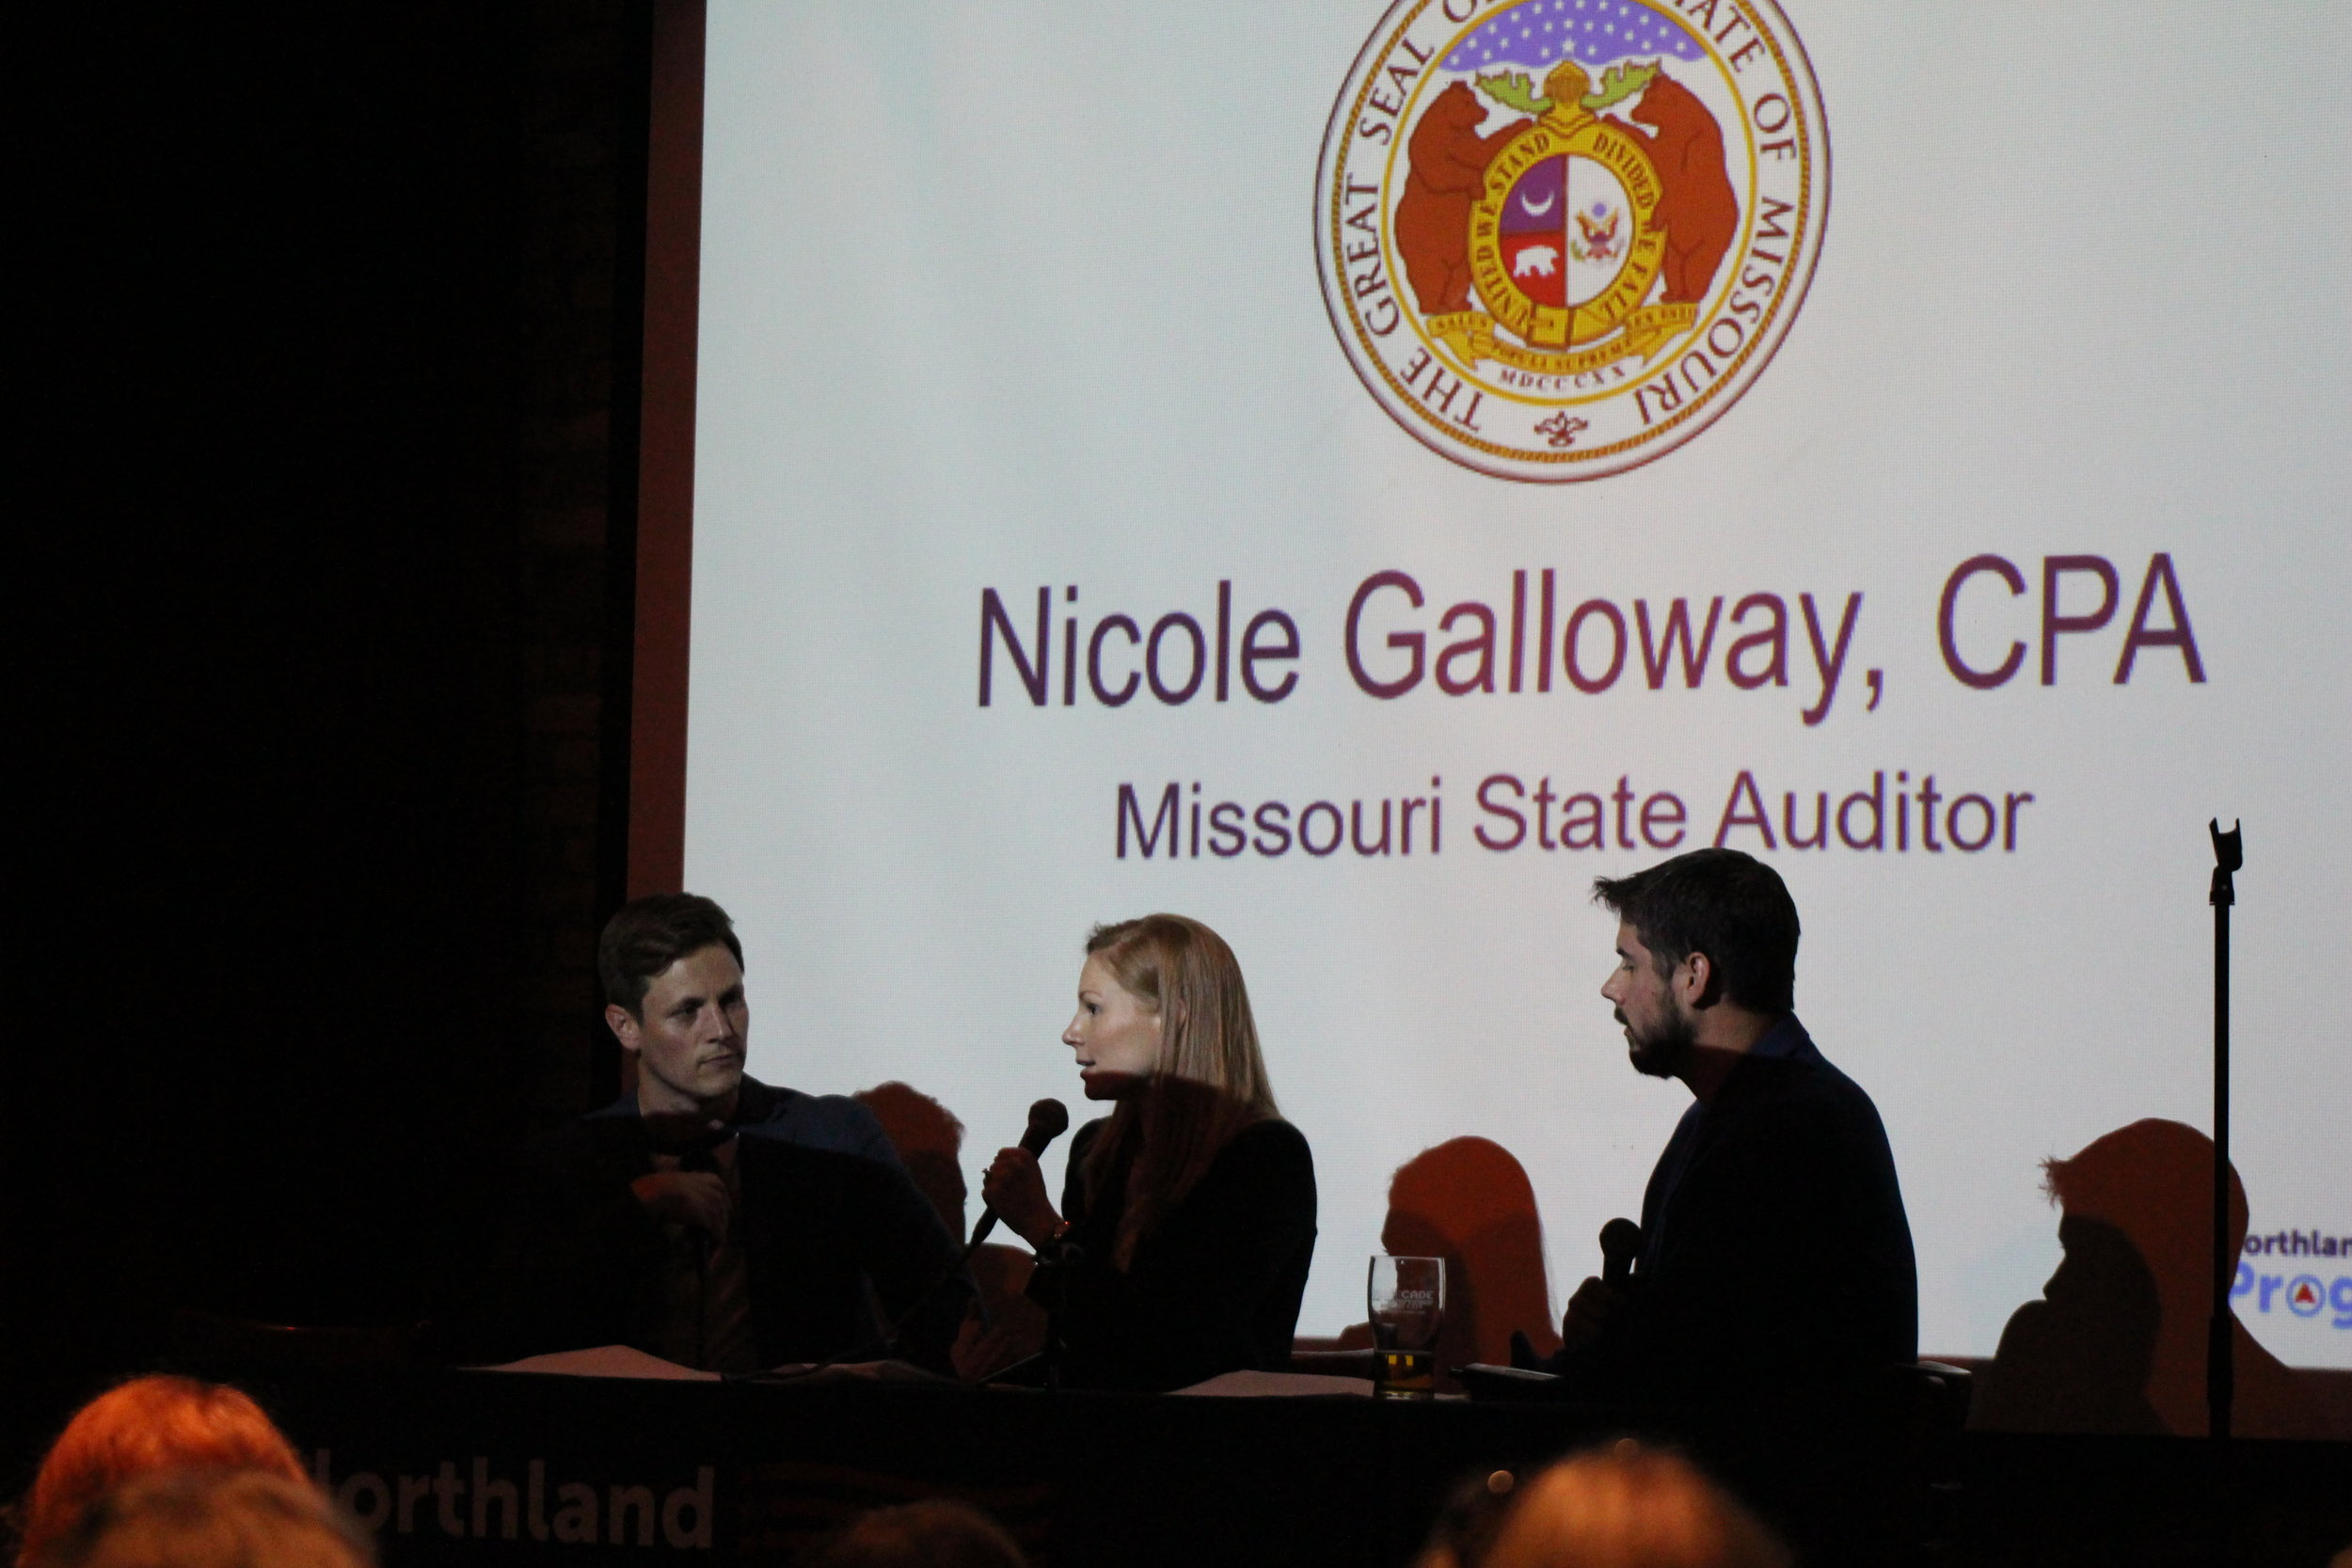 CODY THORN/Citizen editor Missouri State Auditor Nicole Galloway, center, talks during a Northland Progress event on Tuesday, June 5 at the Kansas City Improv at Zona Rosa. She is sitting between Northland Progress president Blake Green (left) and treasurer Mike Amash.